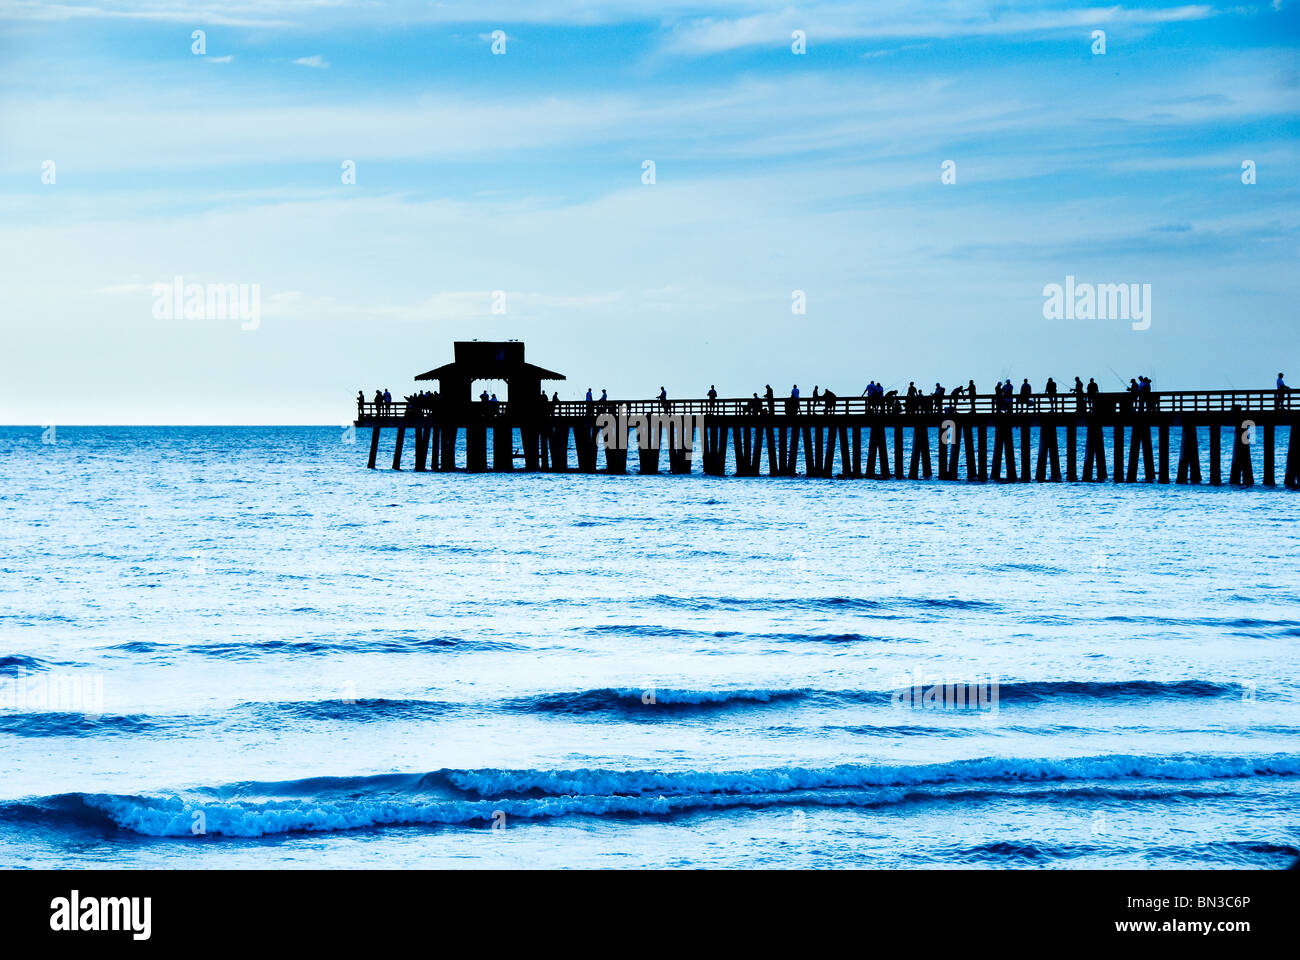 People fishing from Naples pier in Gulf of Mexico, Naples, Florida, USA - Stock Image